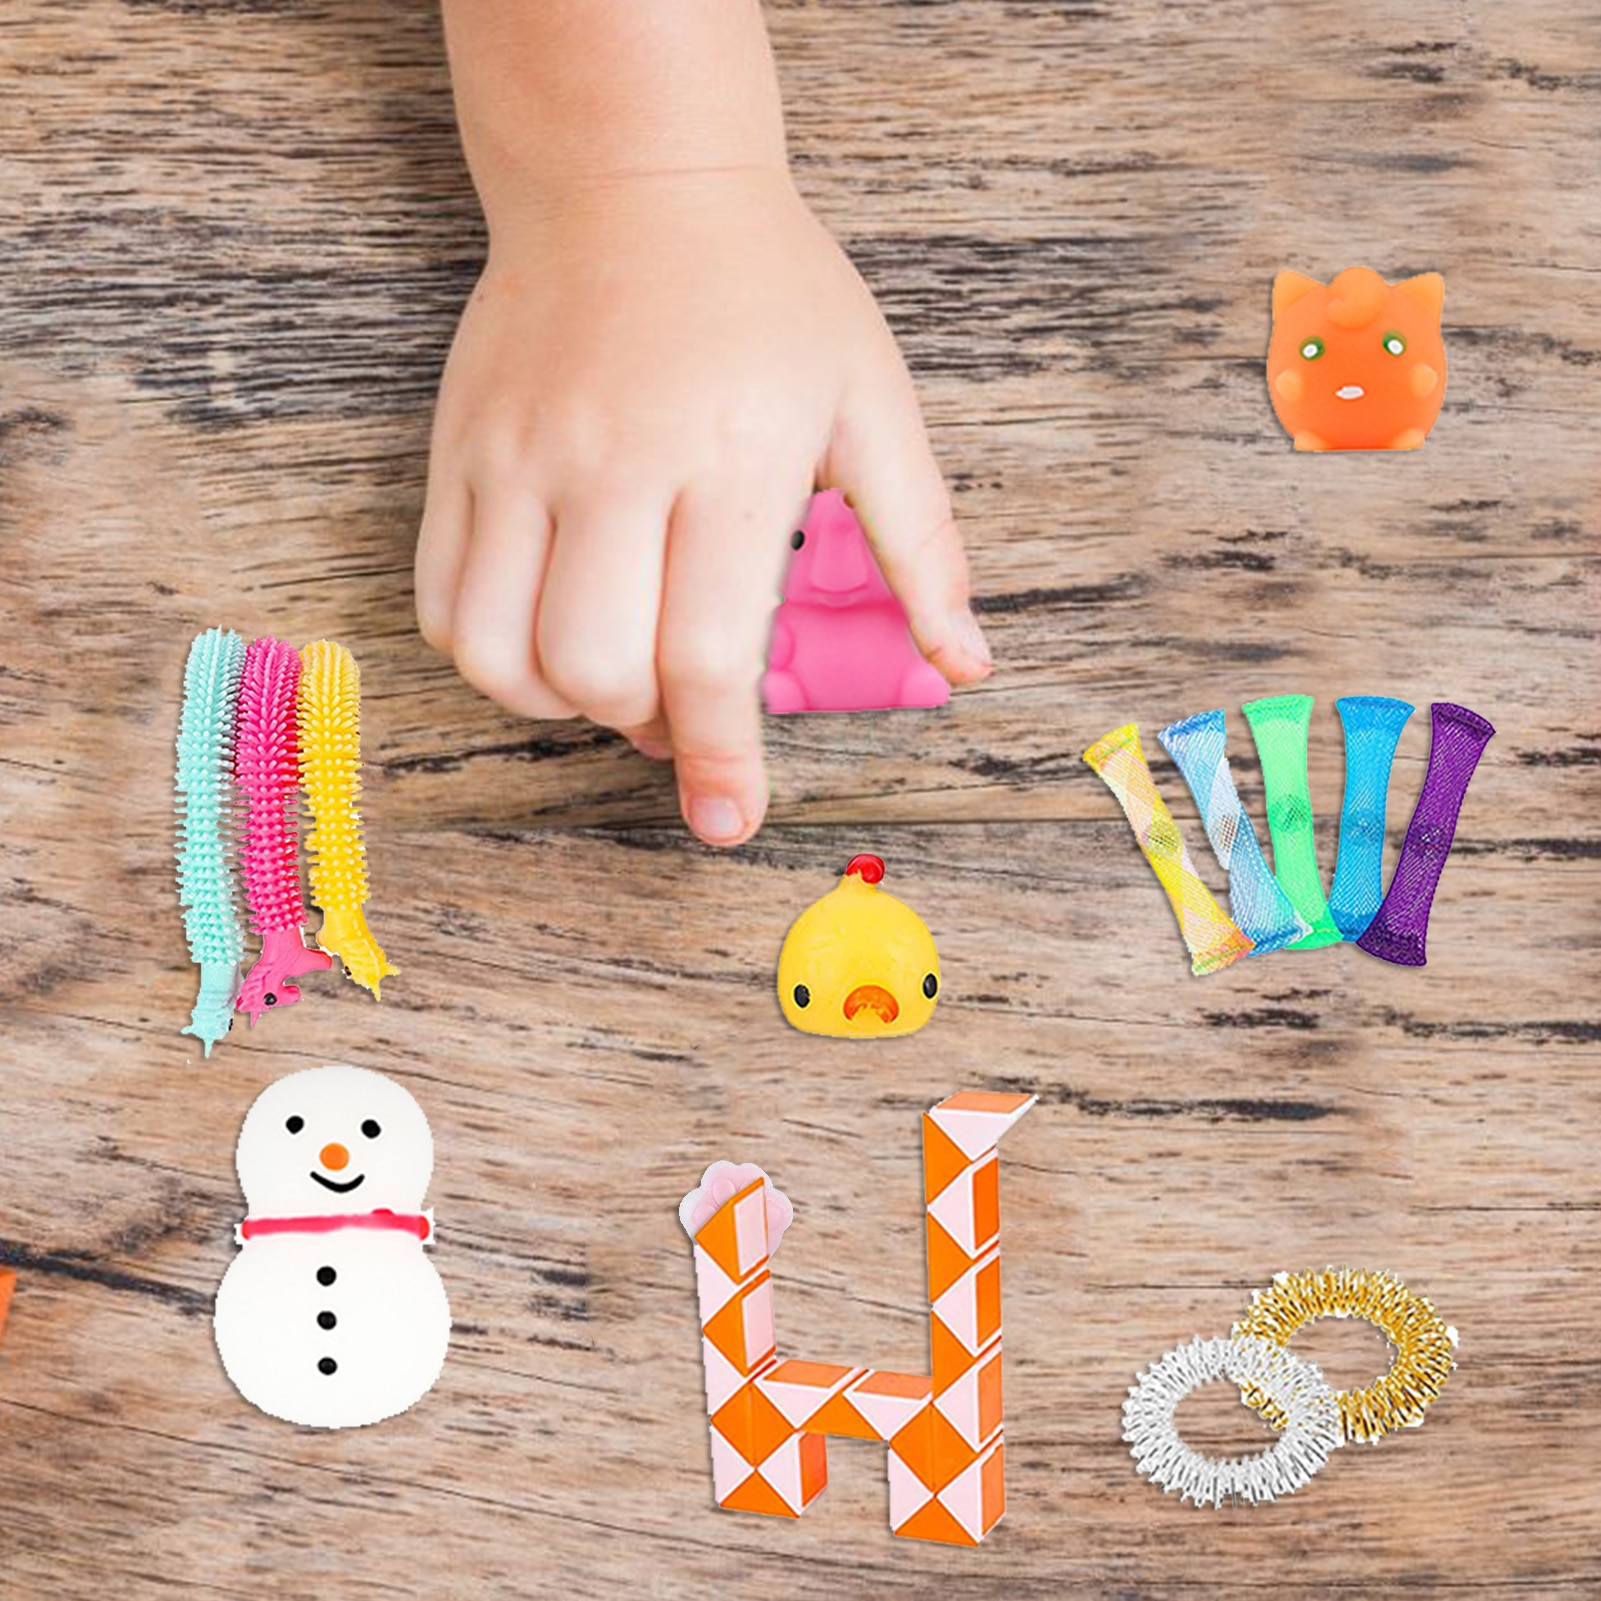 16Pcs Sensory Squeeze Toy Silicone Set Durable Portable Stress Relief Hand Toys For Kids Teens Adults enlarge